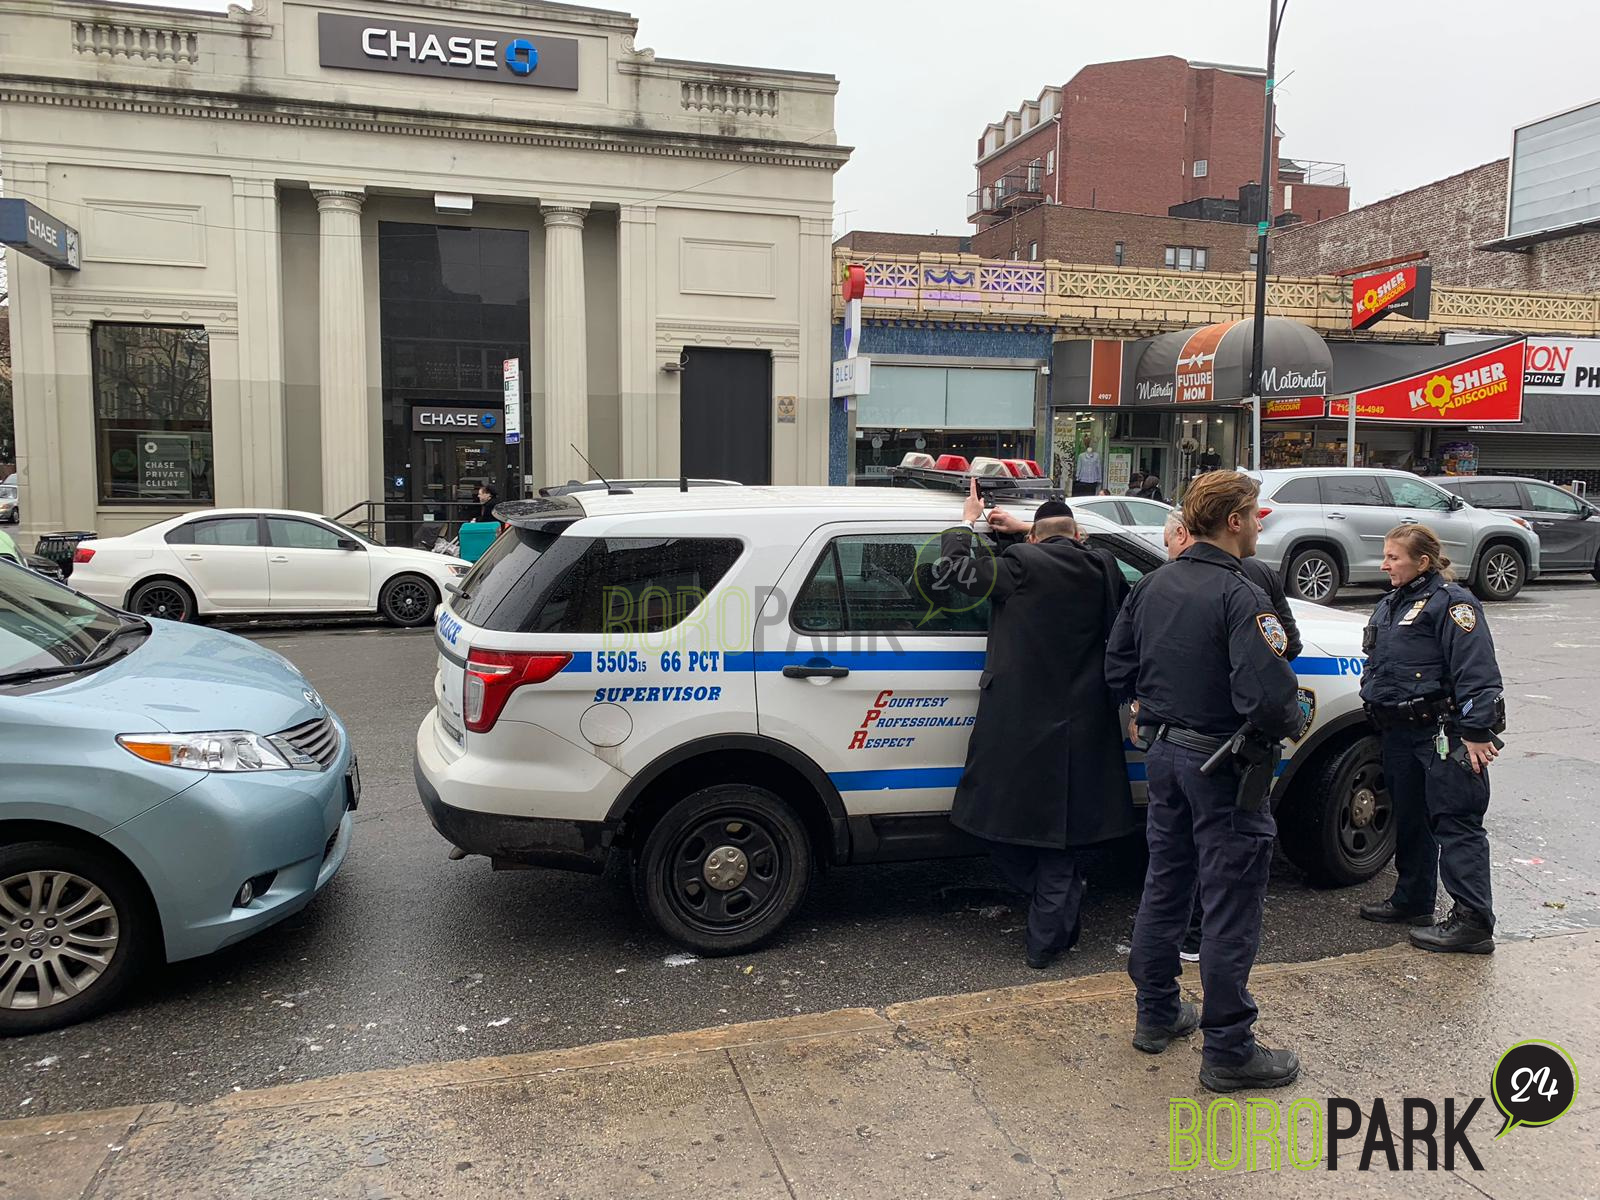 Photos: Chaveirem assist NYPD opening a locked car door on